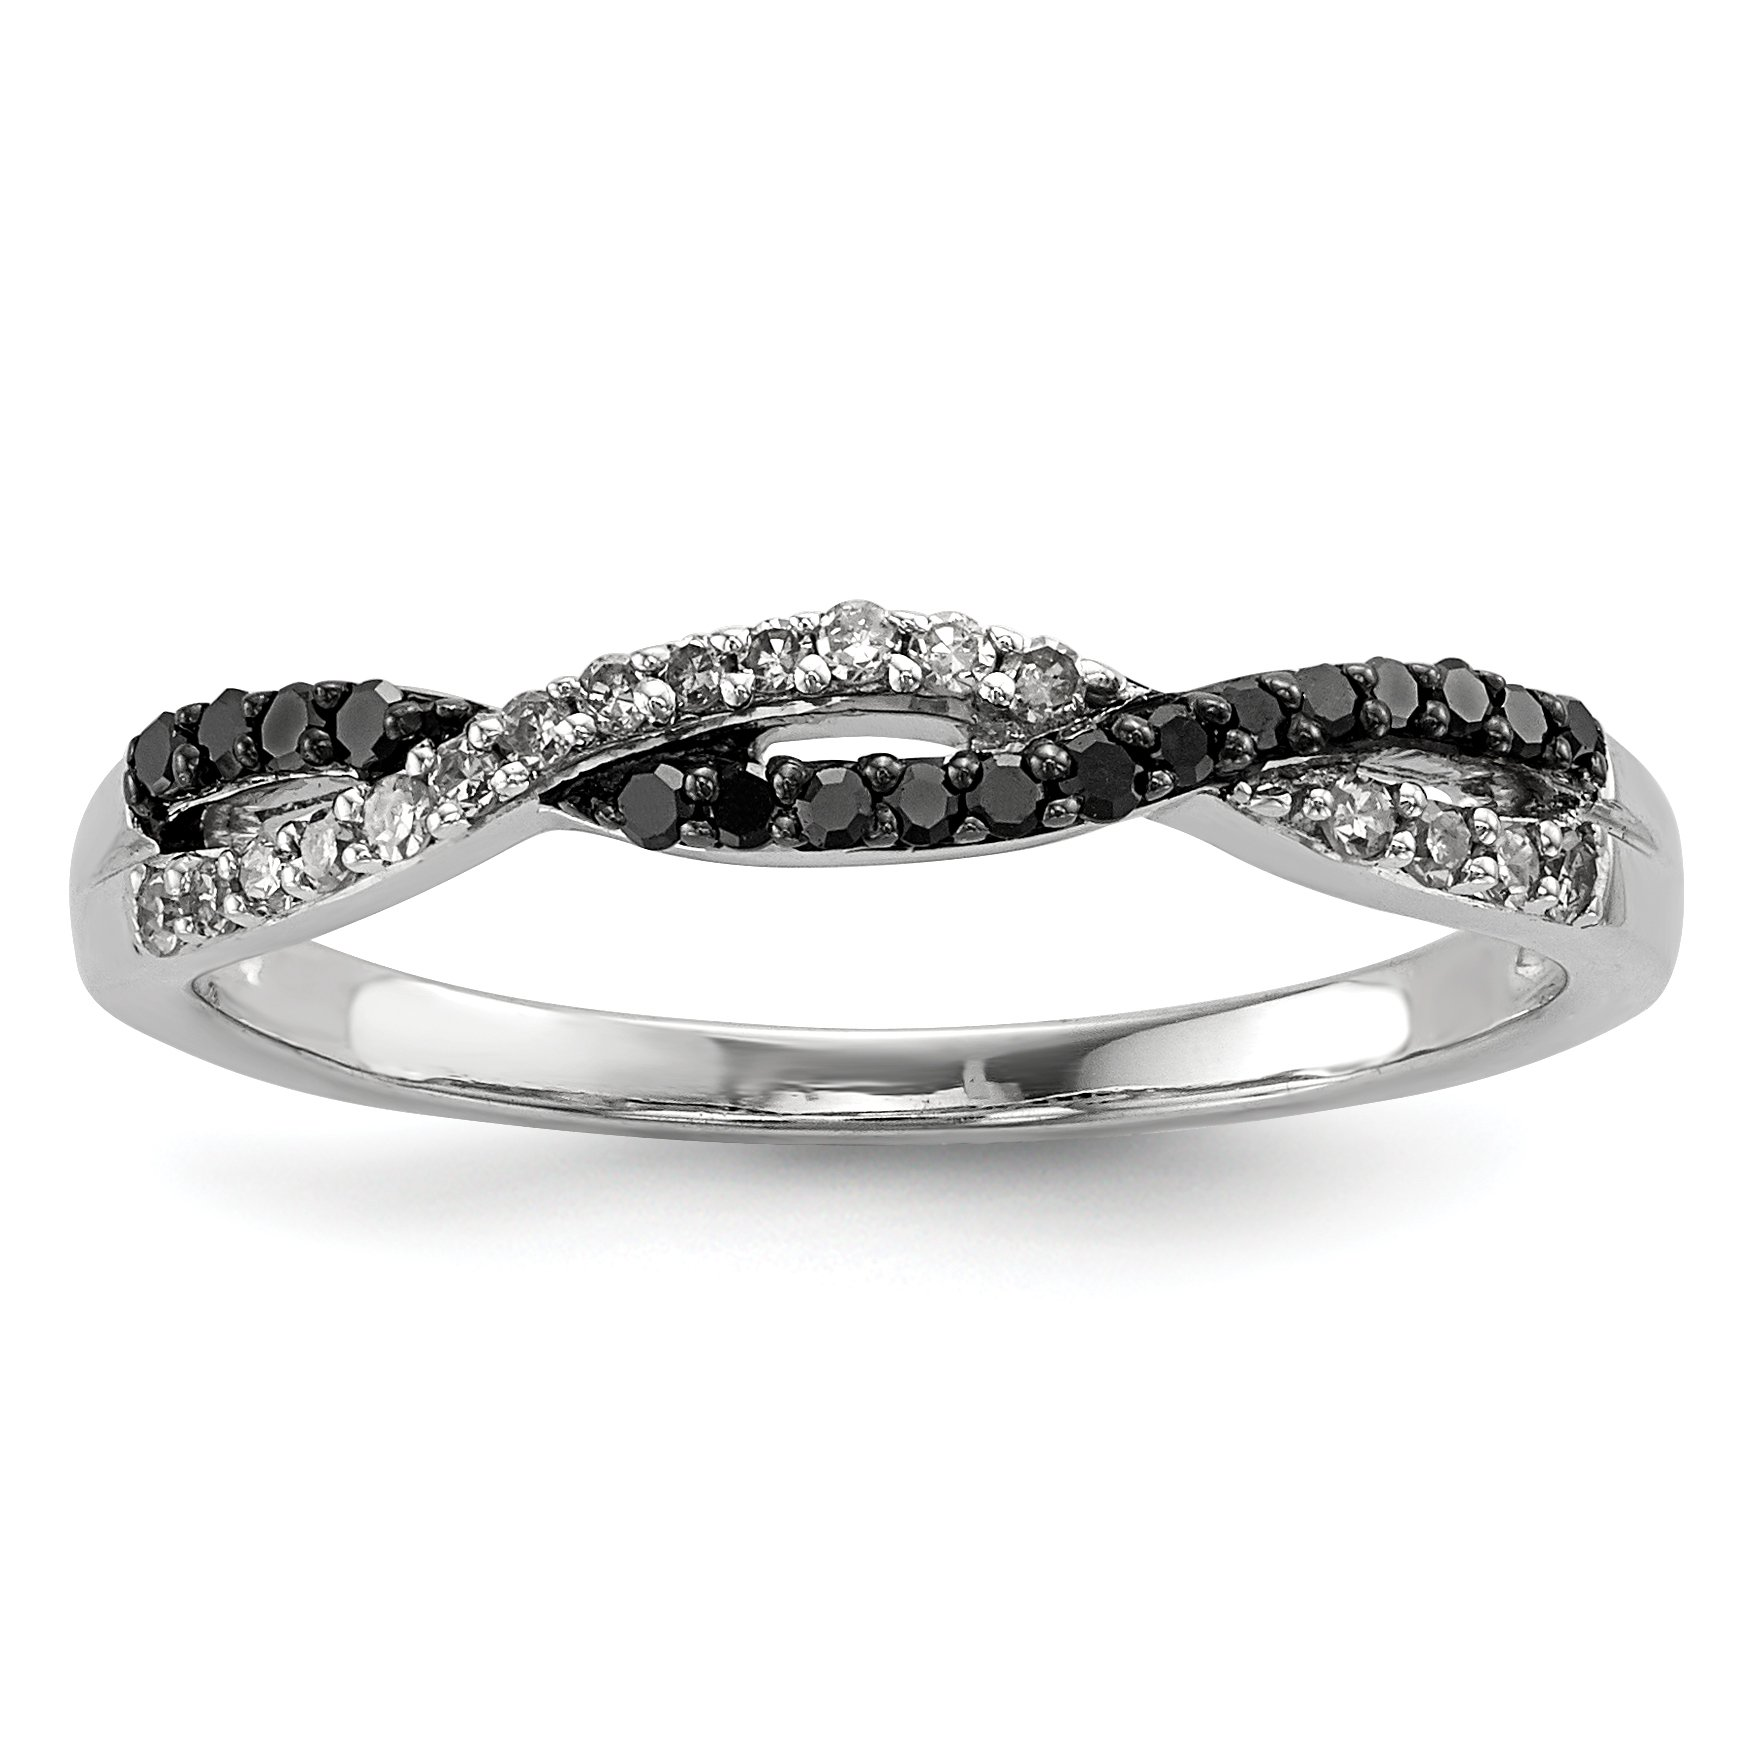 ICE CARATS 925 Sterling Silver Back White Diamond Band Ring Size 8.00 Fine Jewelry Gift Set For Women Heart